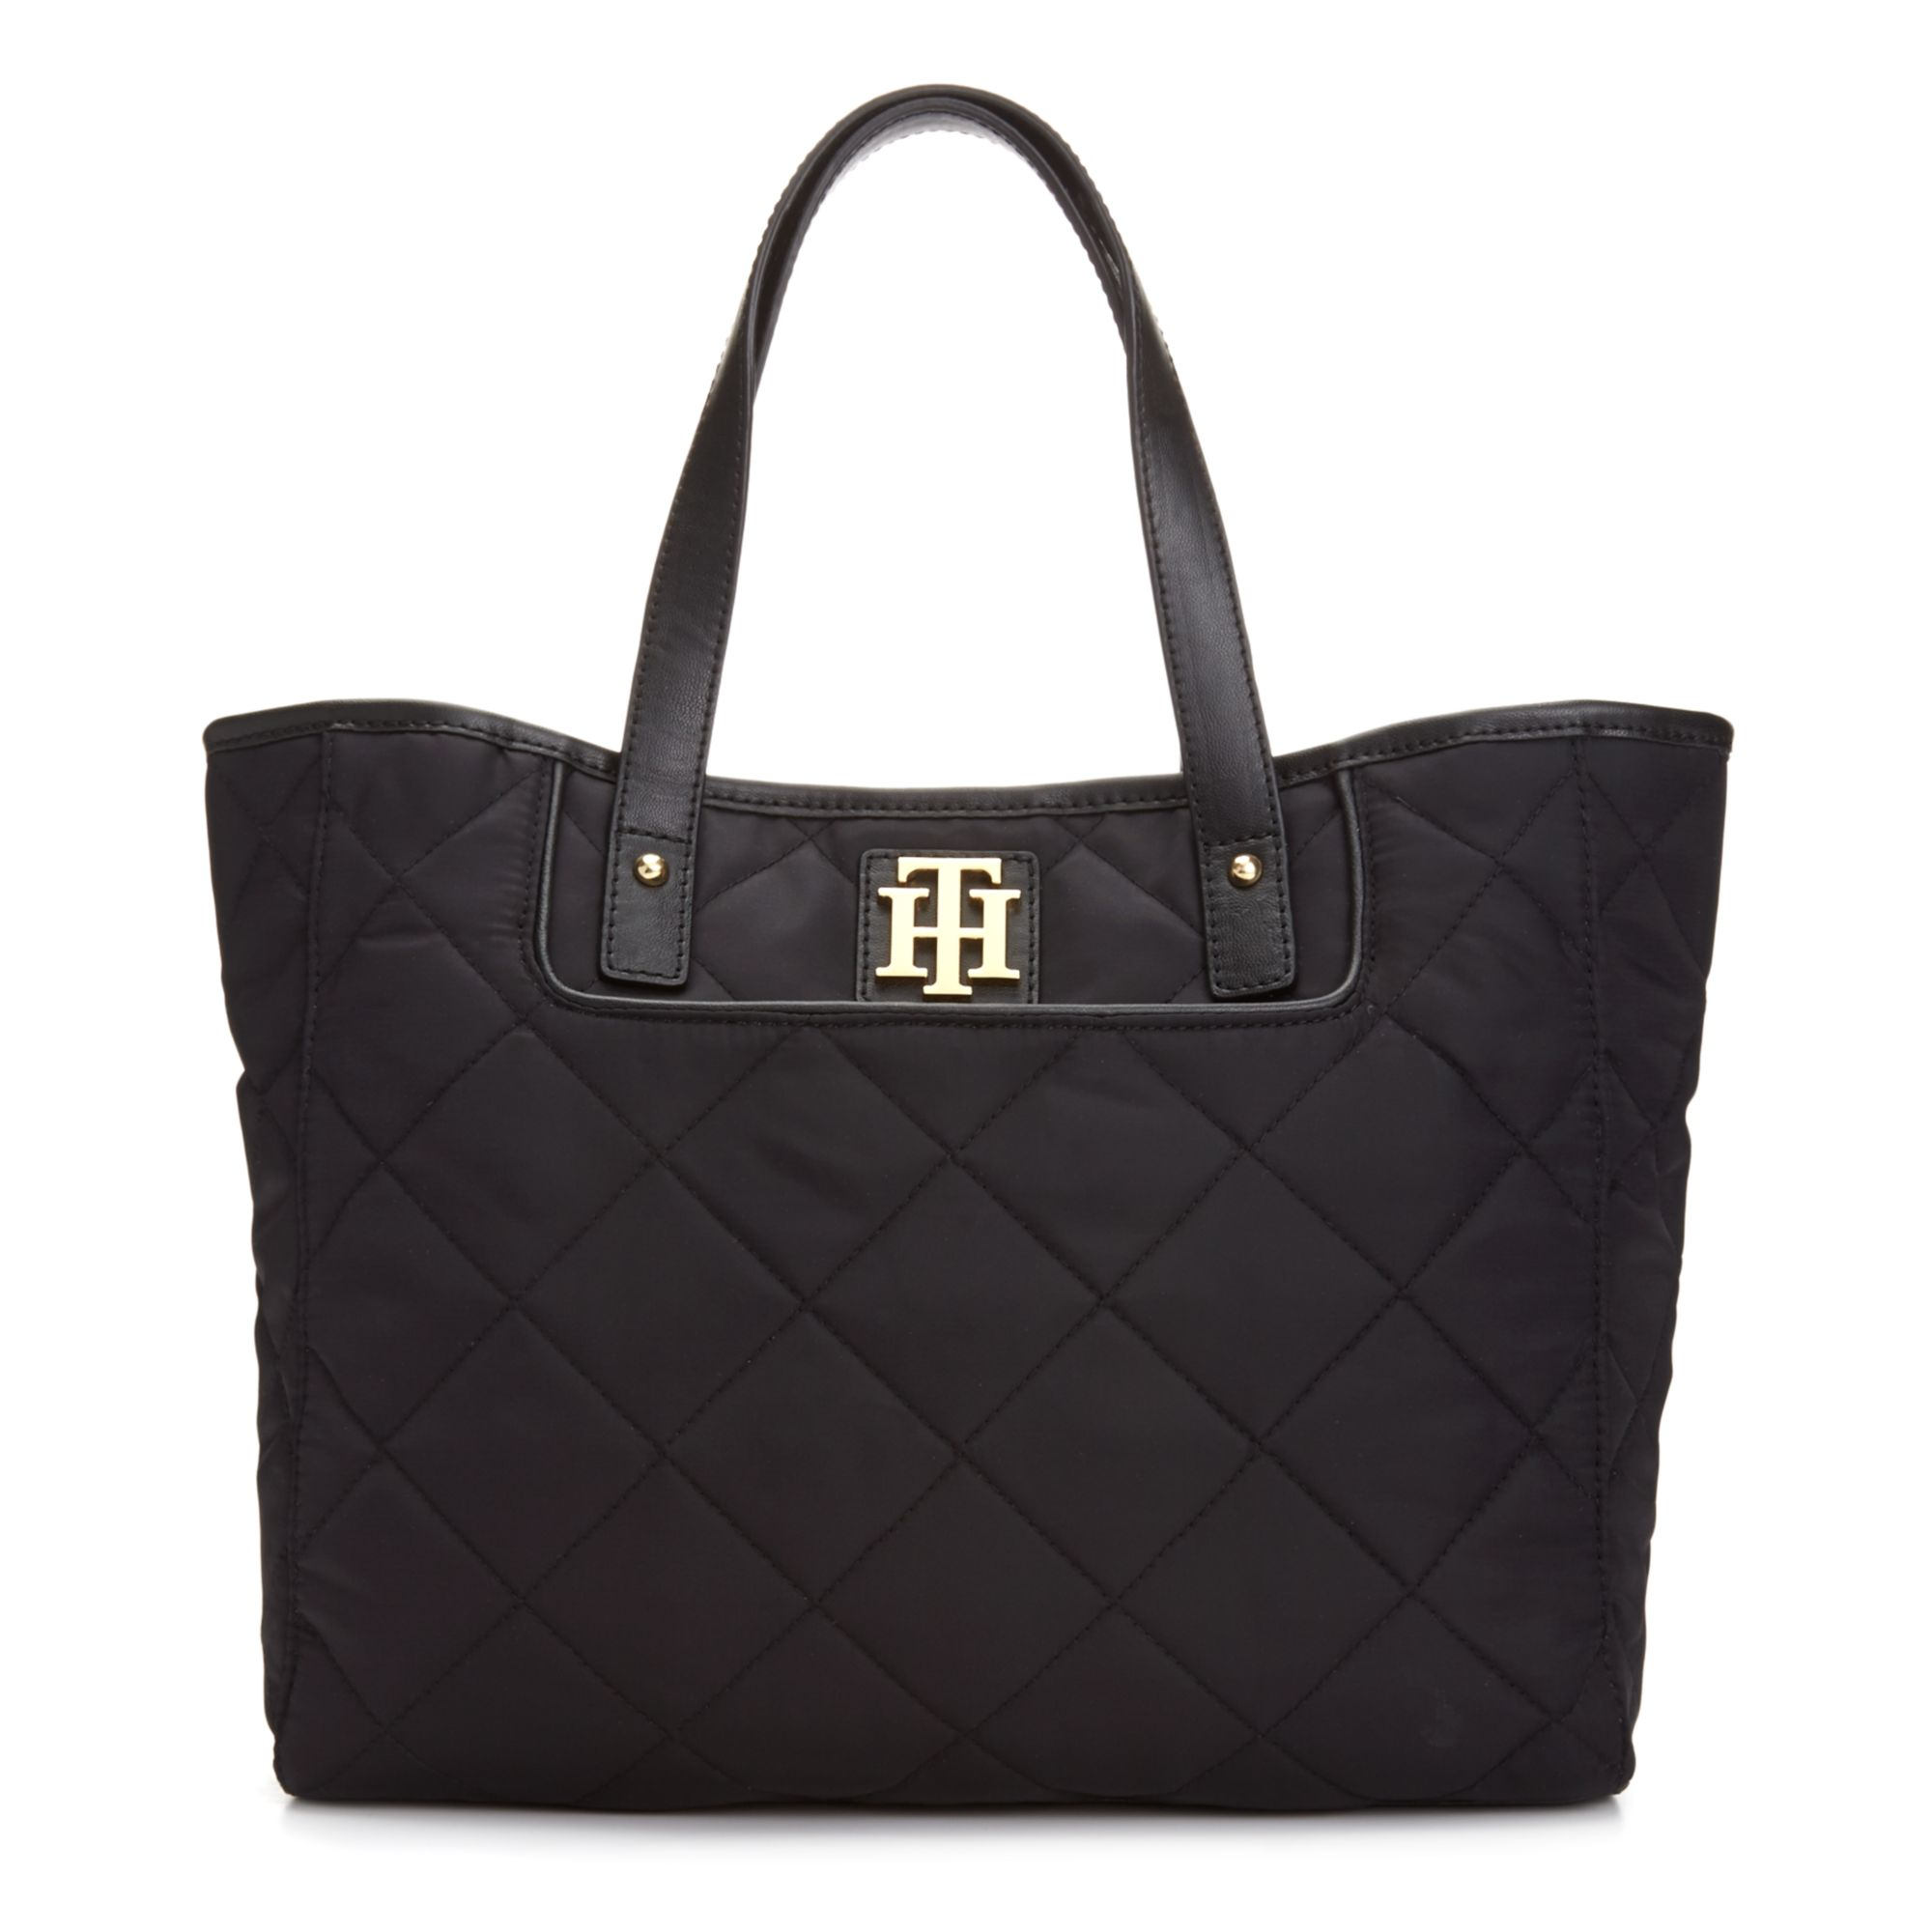 ae4e7a3c768 Lyst - Tommy Hilfiger Signature Quilted Shopper in Black